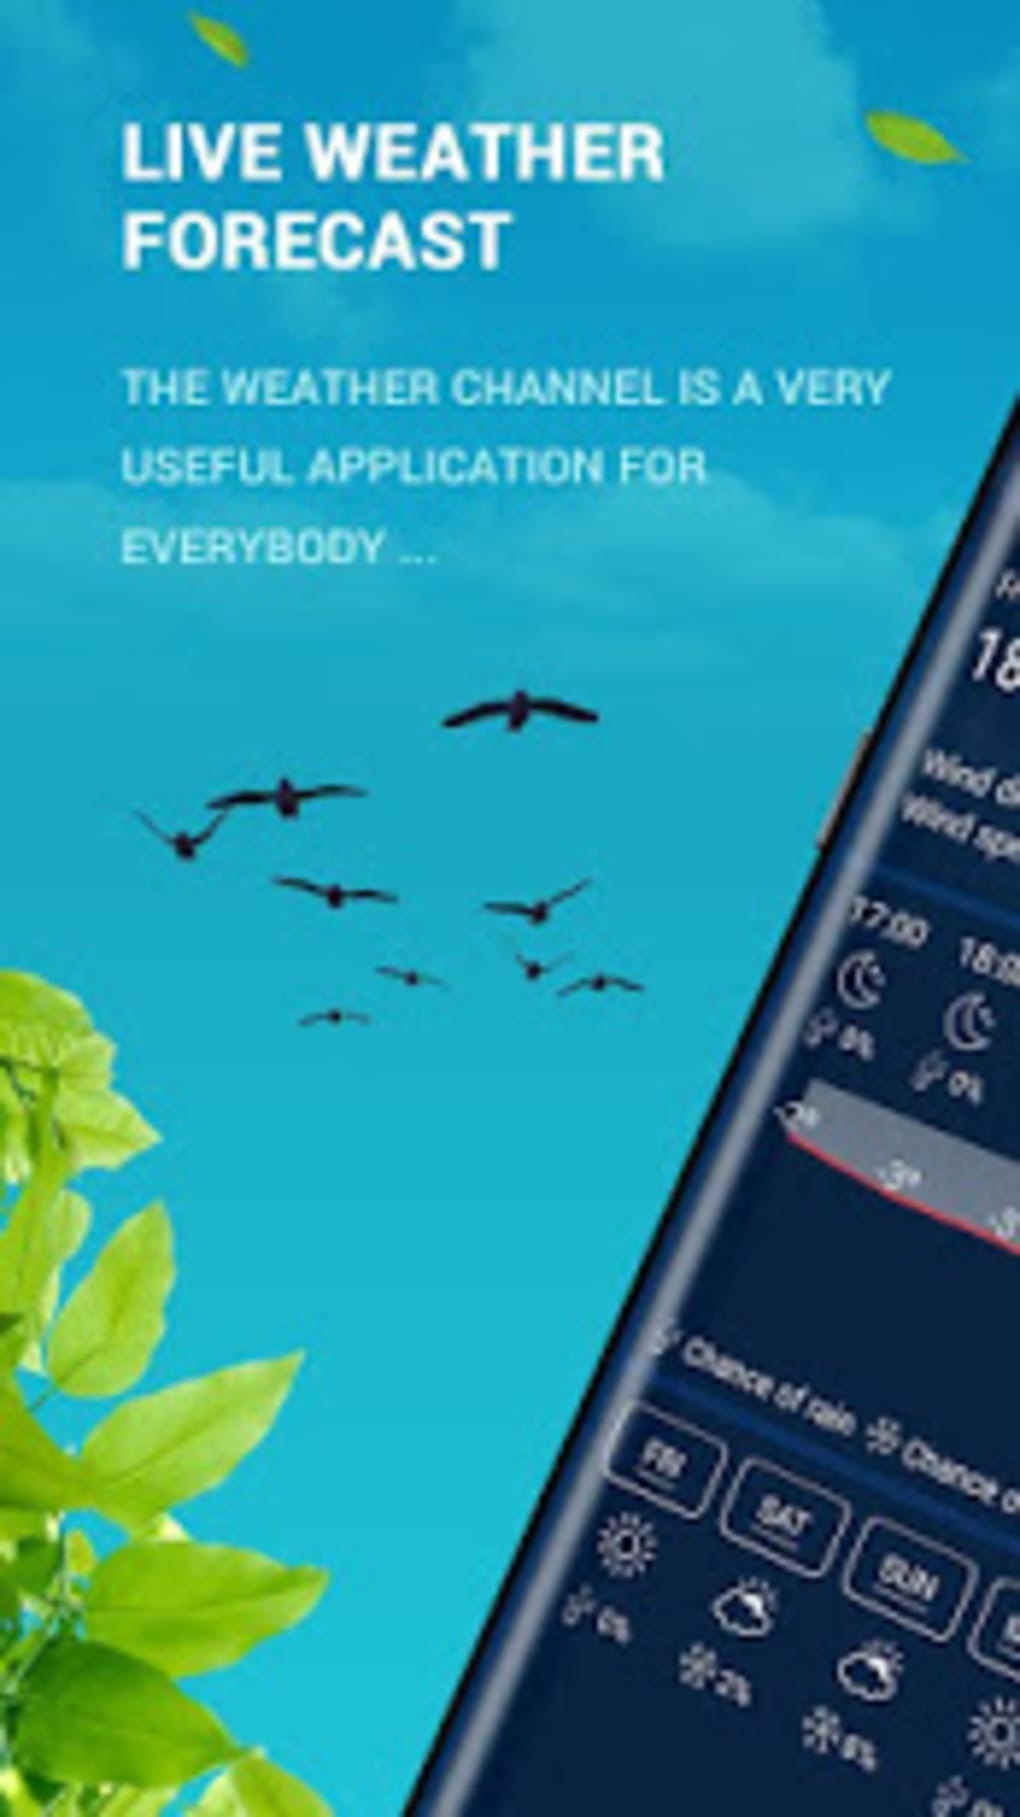 Live Weather - Weather Forecast Apps 2019 for Android - Download